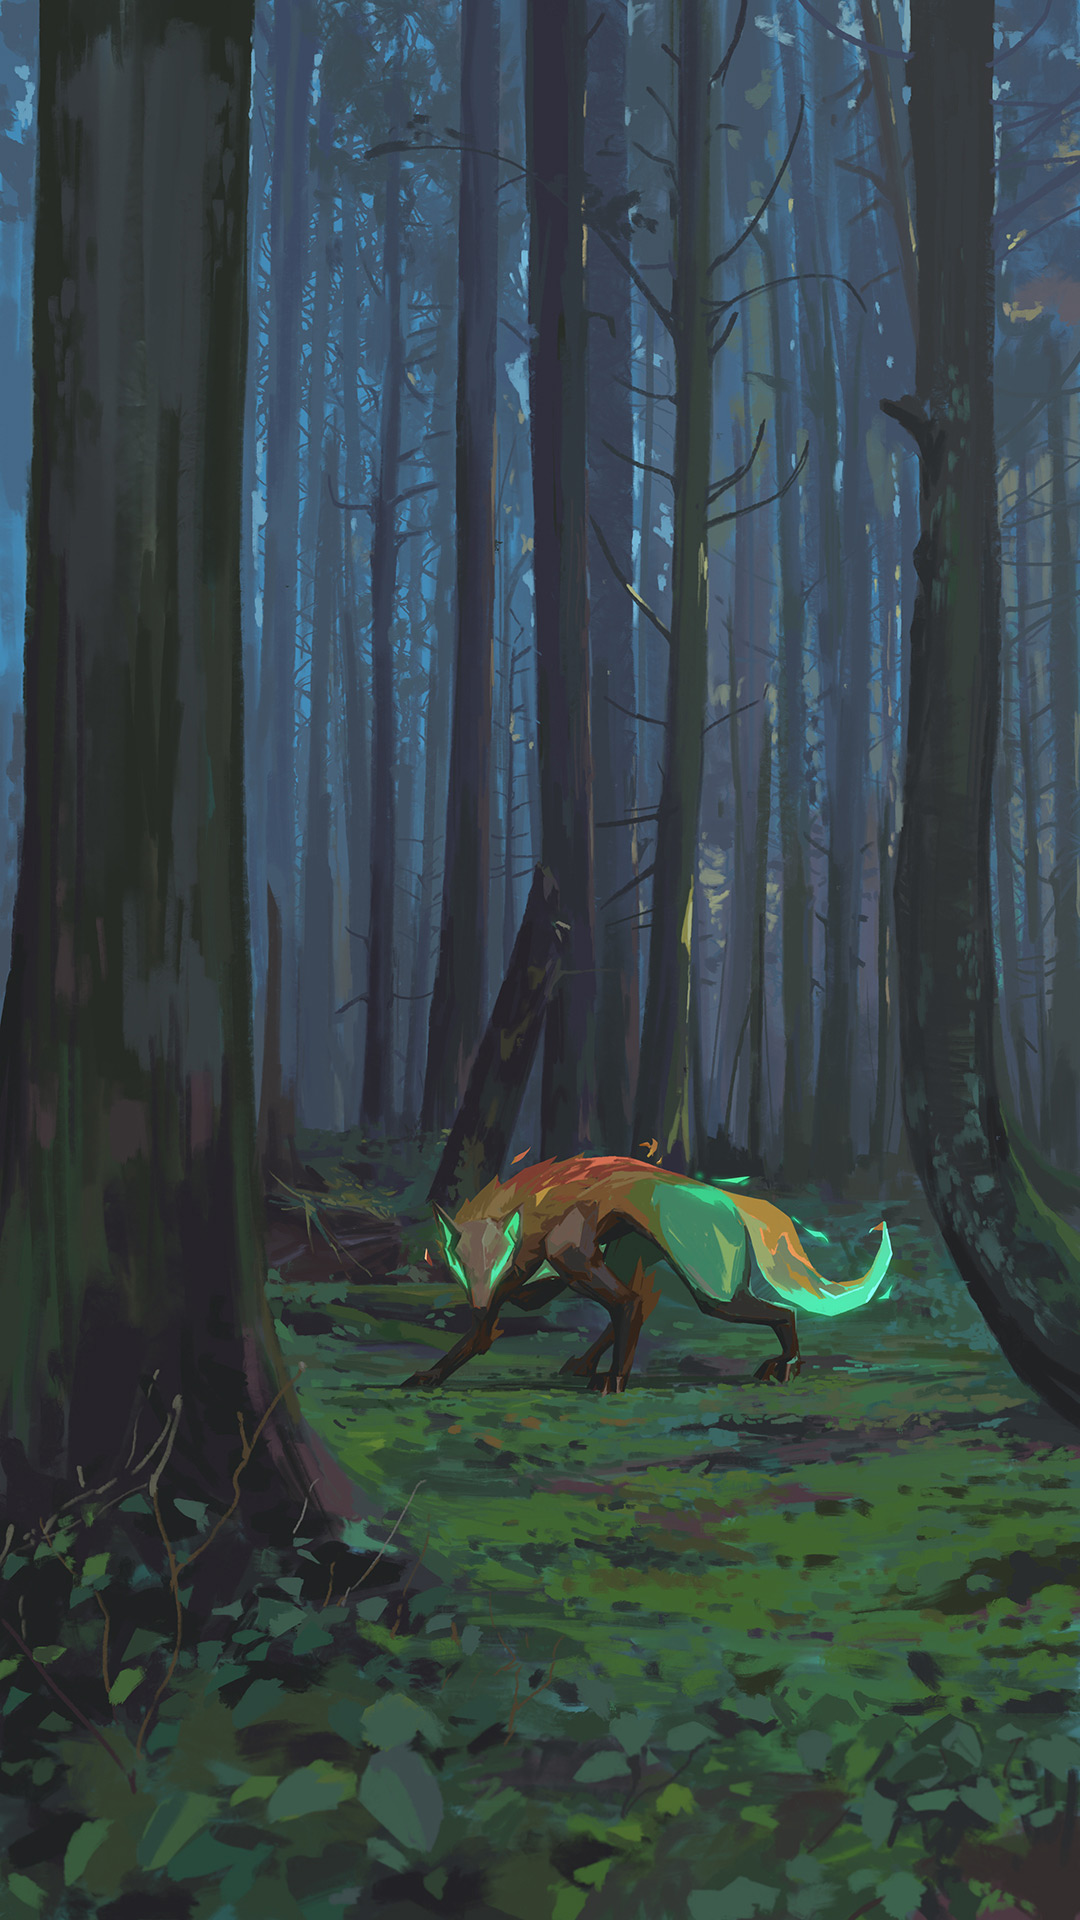 A glowing wolf standing in a forest